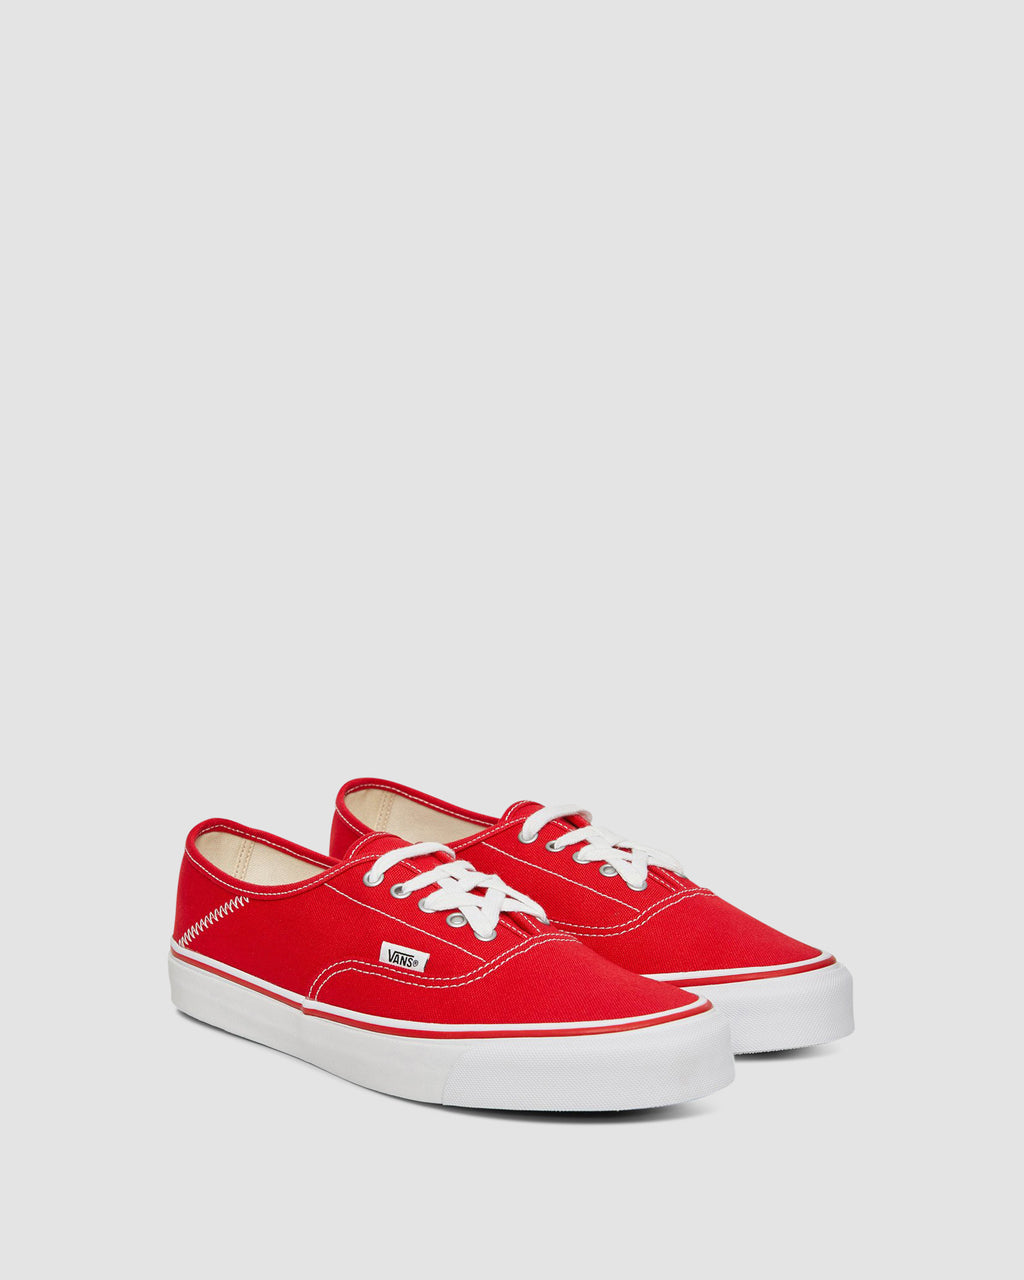 VANS OG STYLE 43 AUTHENTIC FOLD DOWN TRUE RED